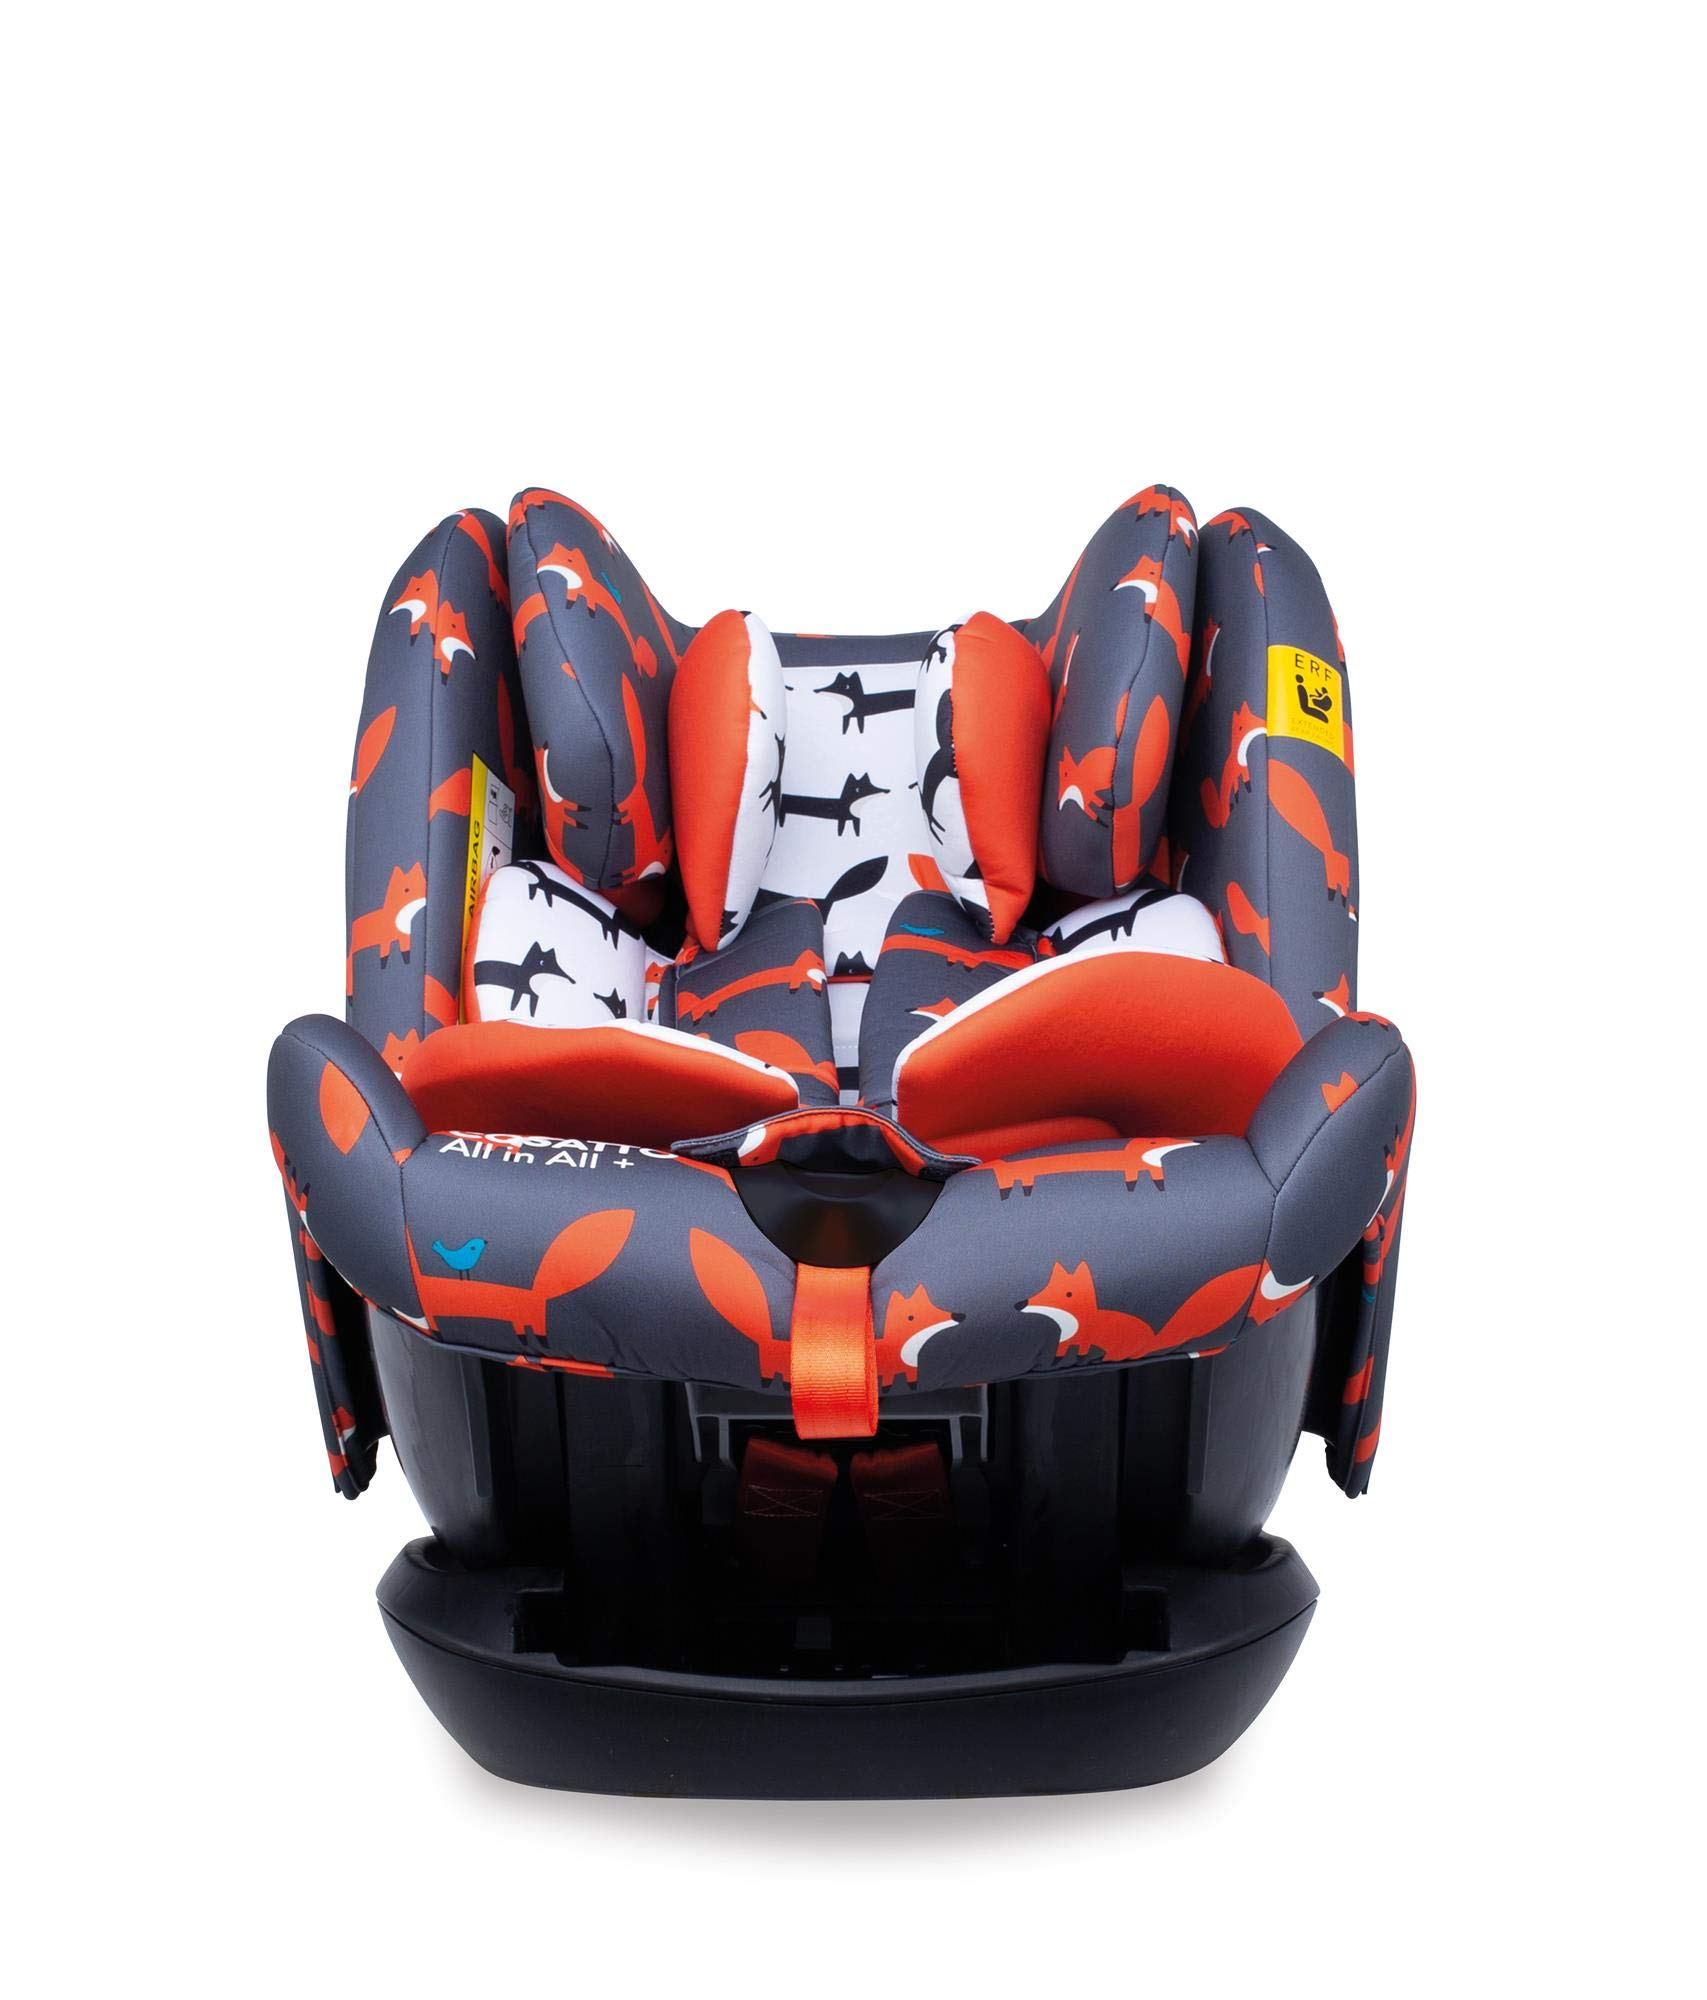 Cosatto CT4241 All in All + Group 0+123 Car Seat Mister Fox 8.9 kg Cosatto Extended rear facing Suitable for all stages Extra security 2